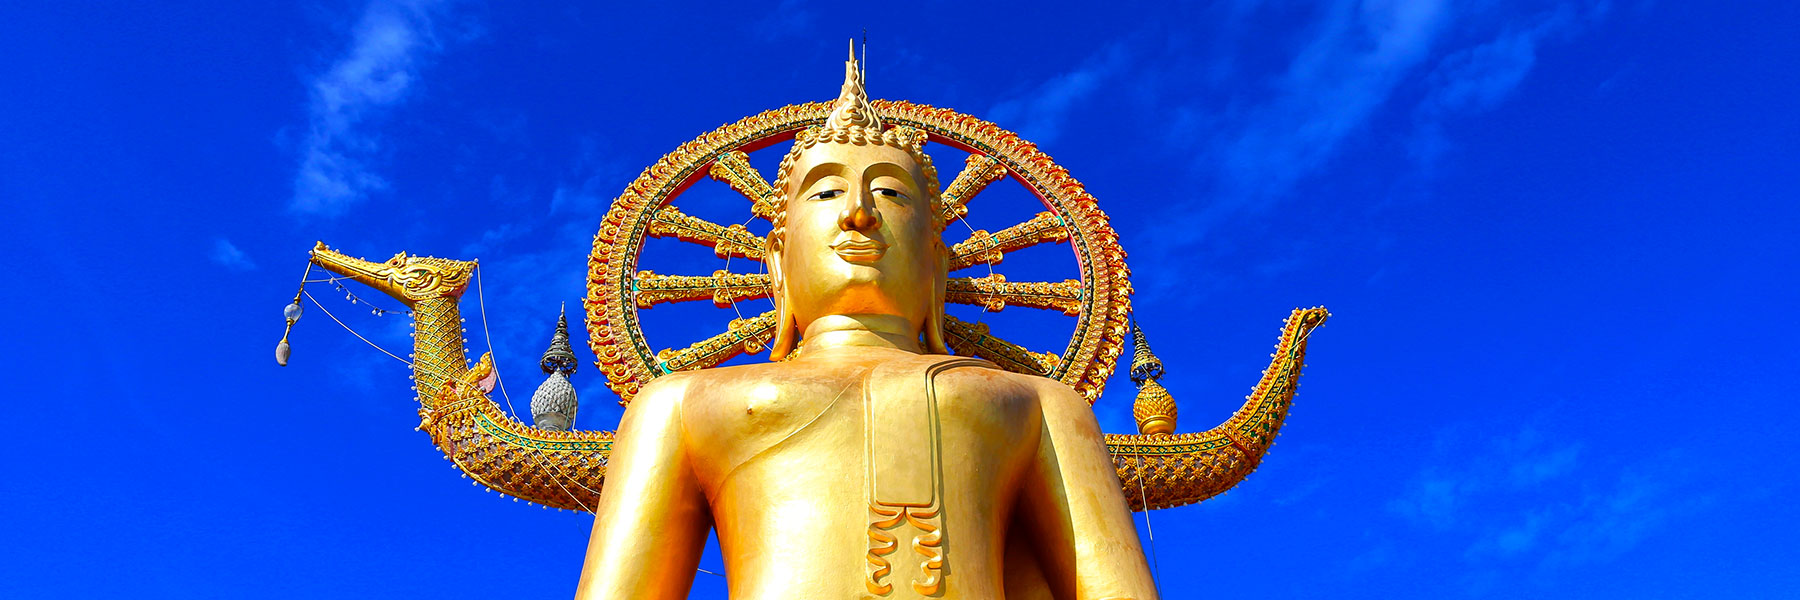 Buddhism and the Cultural Geography of Thailand - Steven Andrew Martin - International Education Online